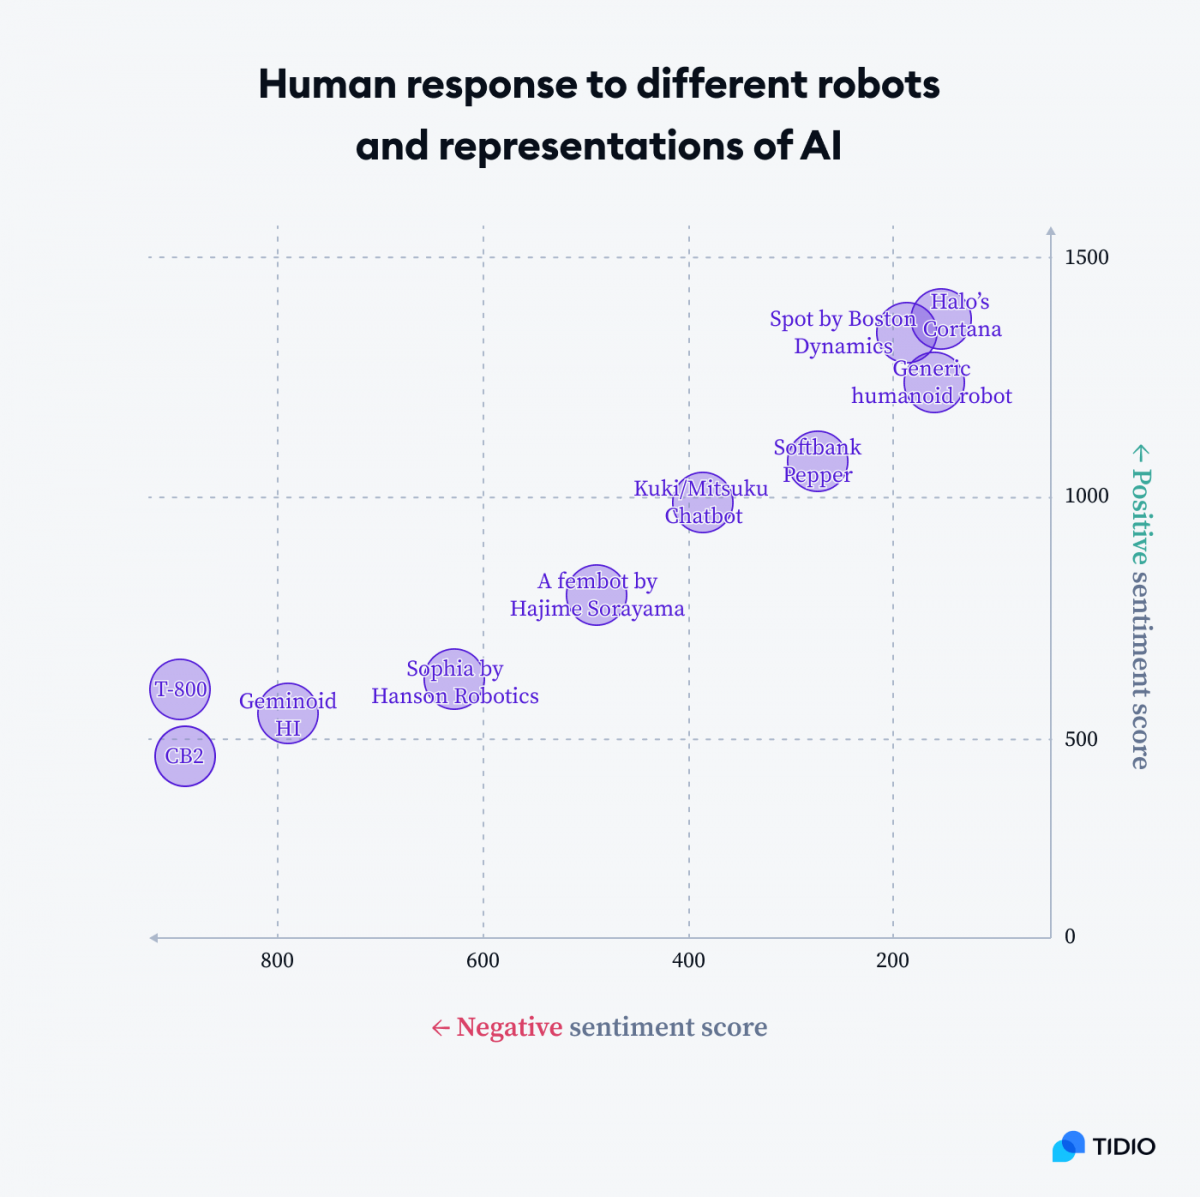 Graph presenting human response to different robots and representations of AI